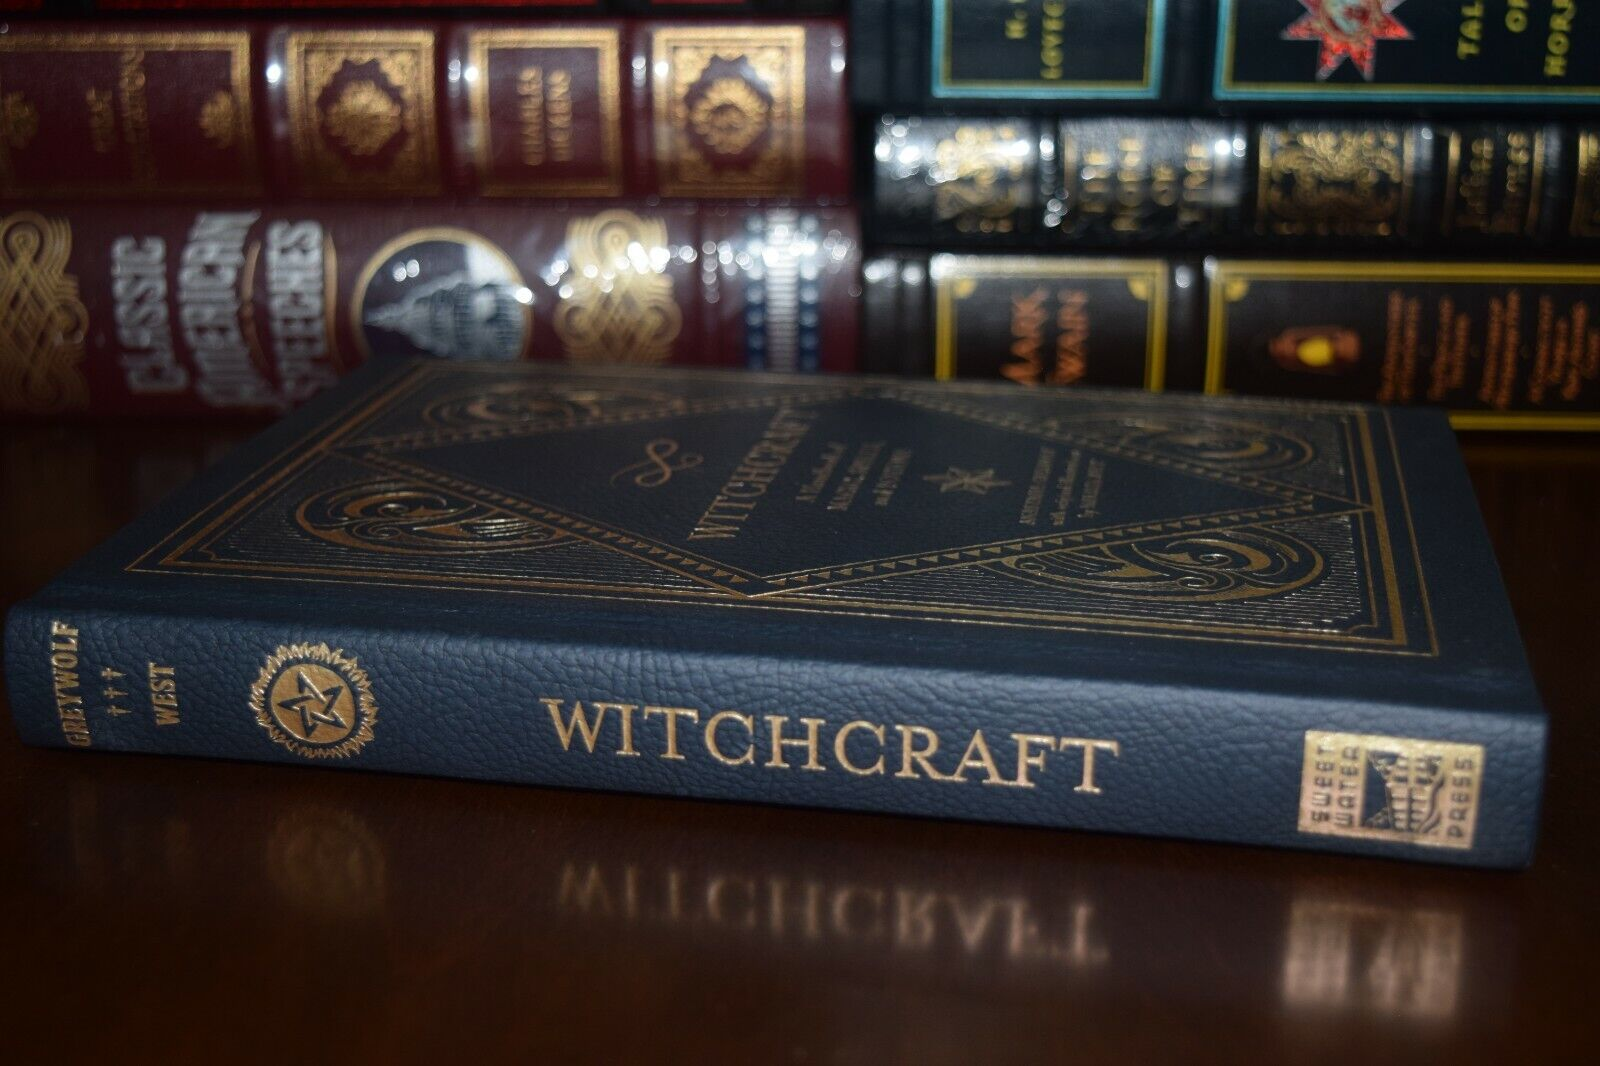 Witchcraft Handbook of Magic Spells and Potions Ribbon New Deluxe Hardcover Gift